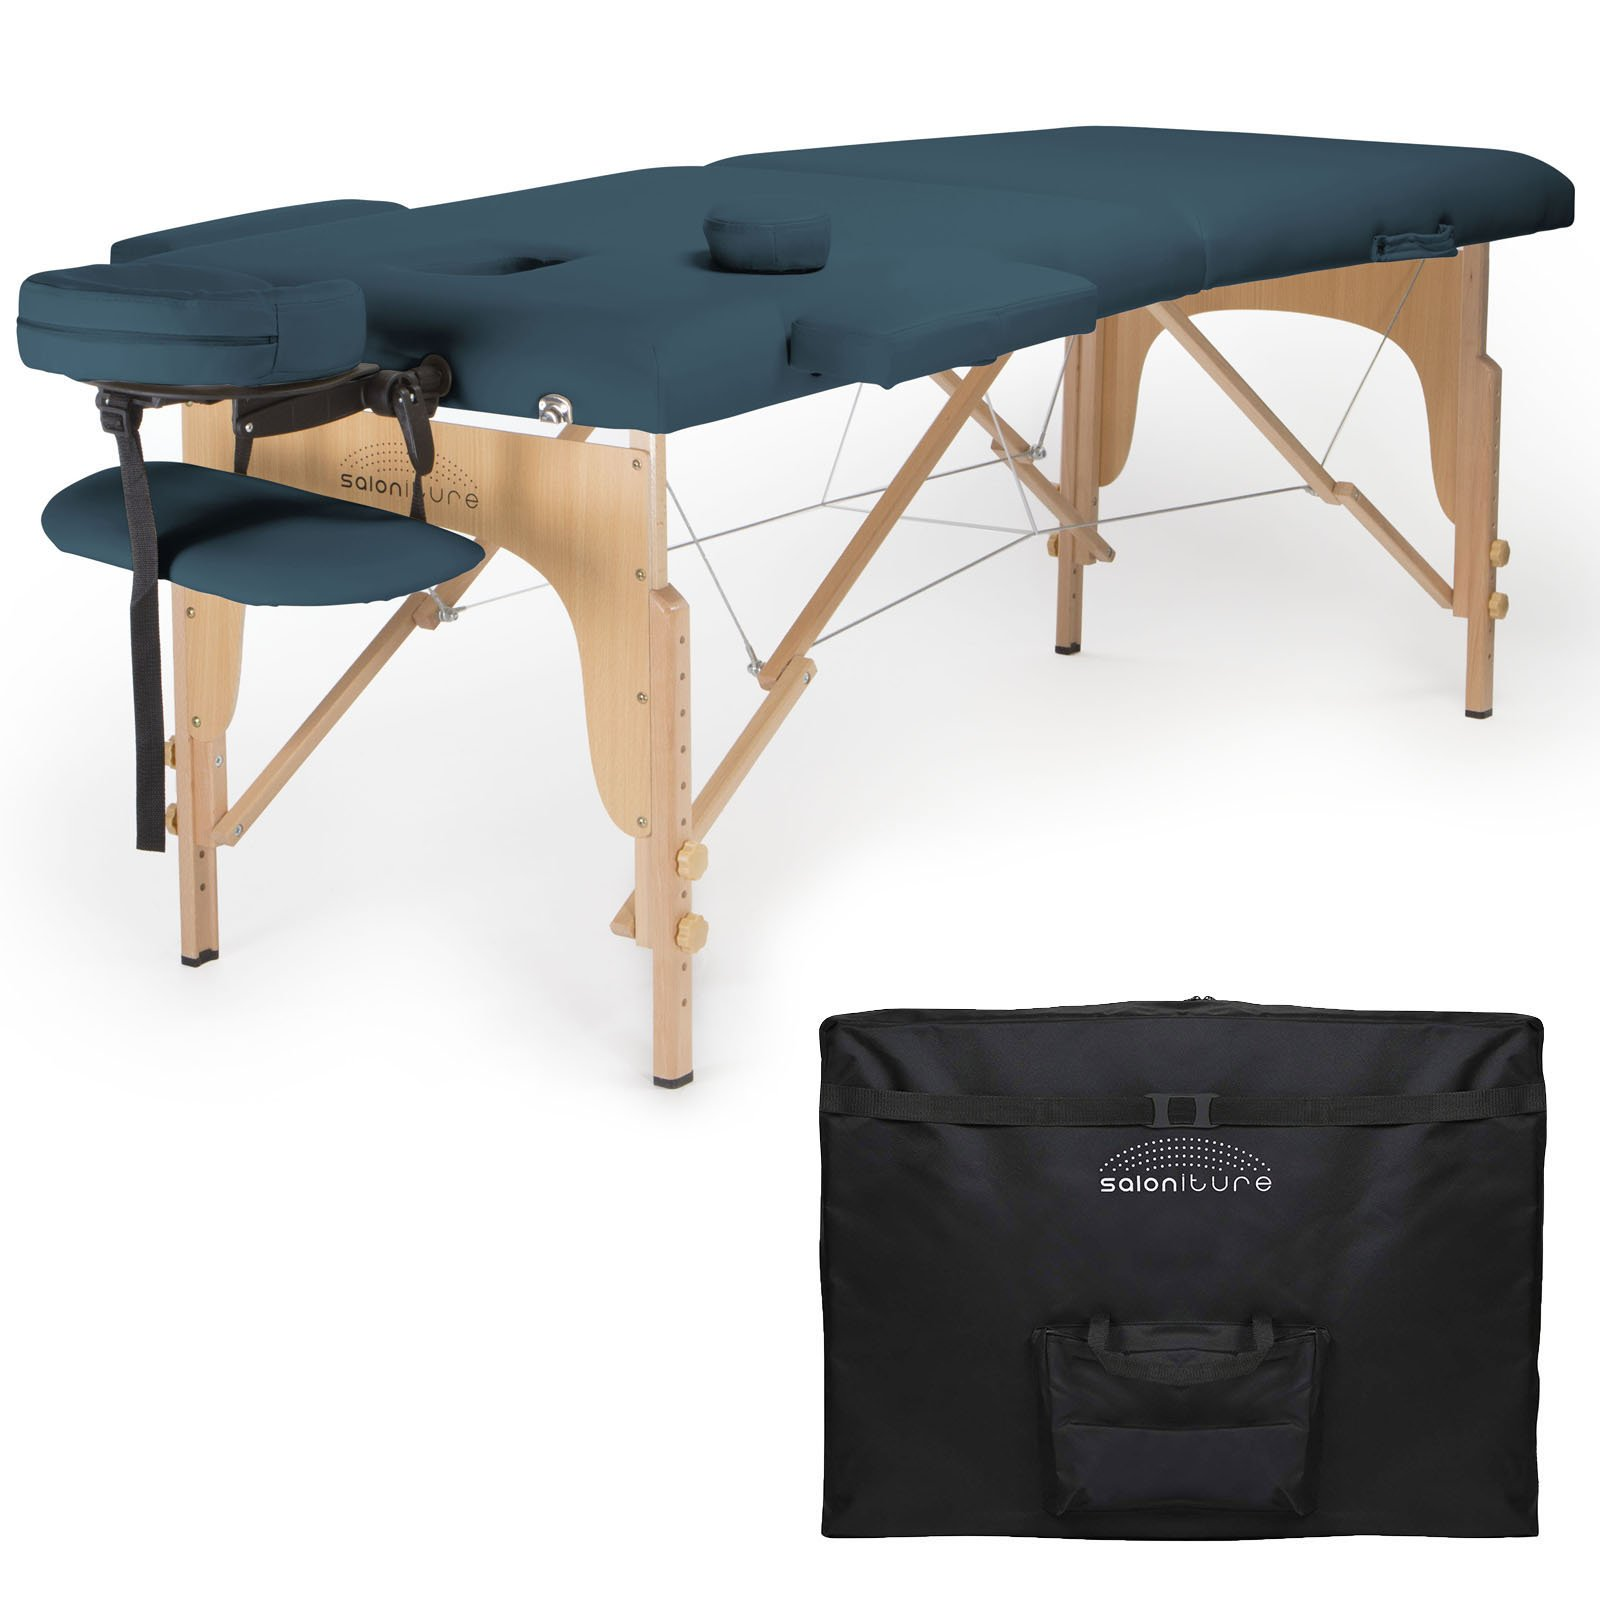 Saloniture Professional Portable Folding Massage Table with Carrying Case - Blue by Saloniture